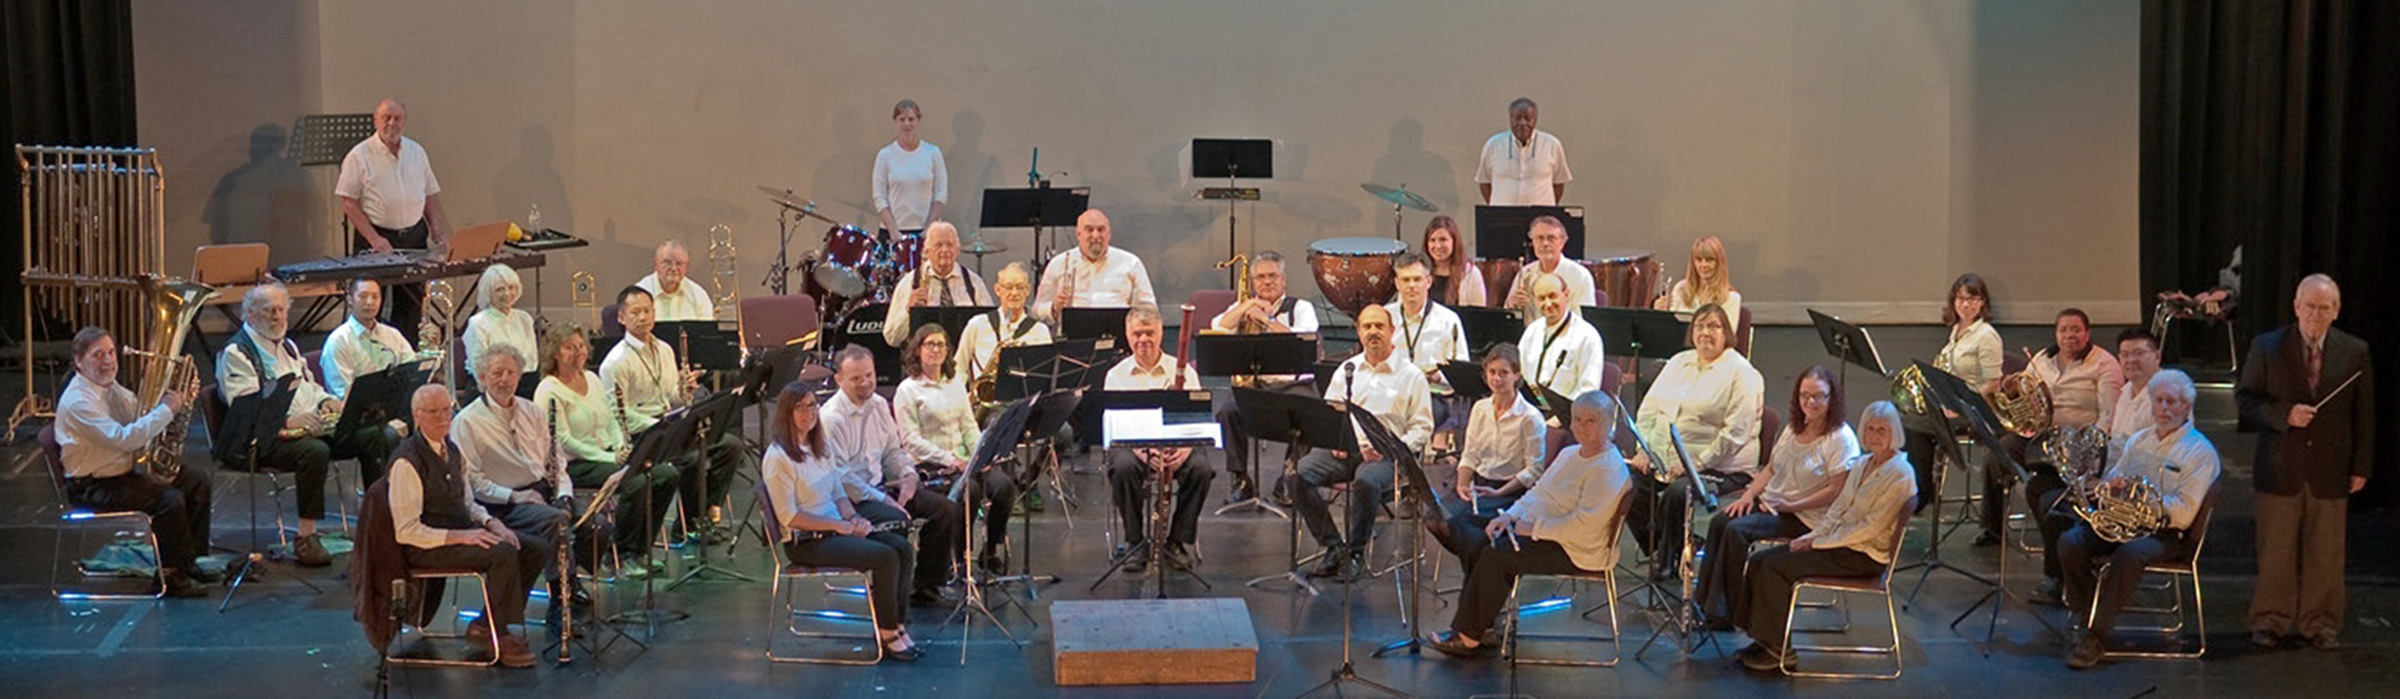 Courtesy photo  Members of the Alameda Community Band recently entertained the community with a concert at Kofman Auditorium